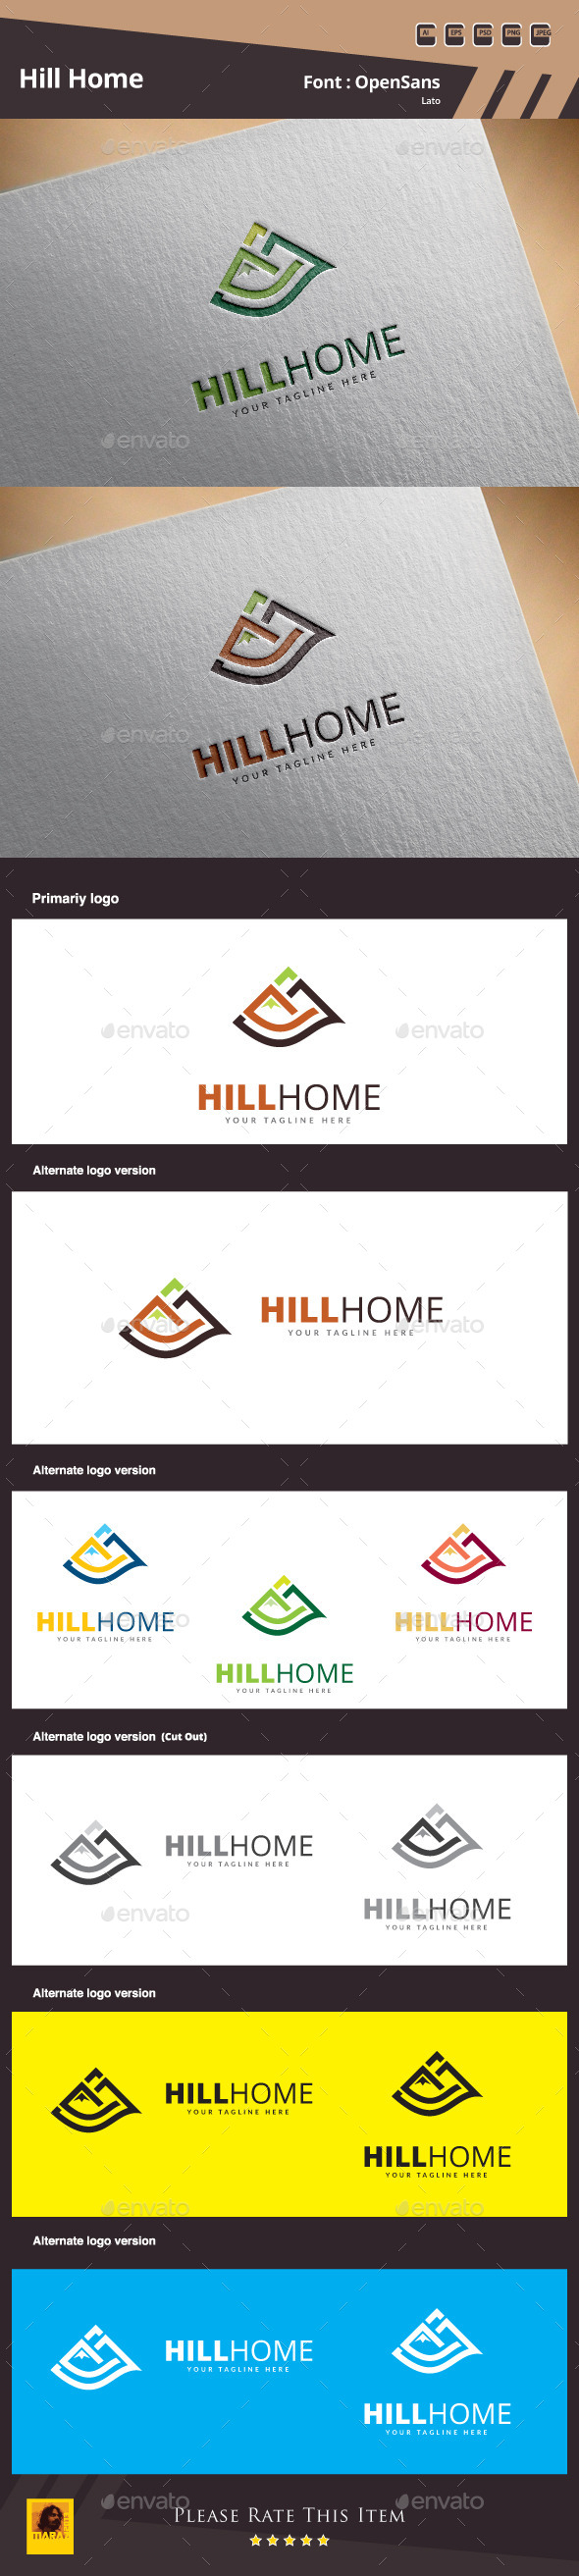 Hill Home Logo Template - Buildings Logo Templates